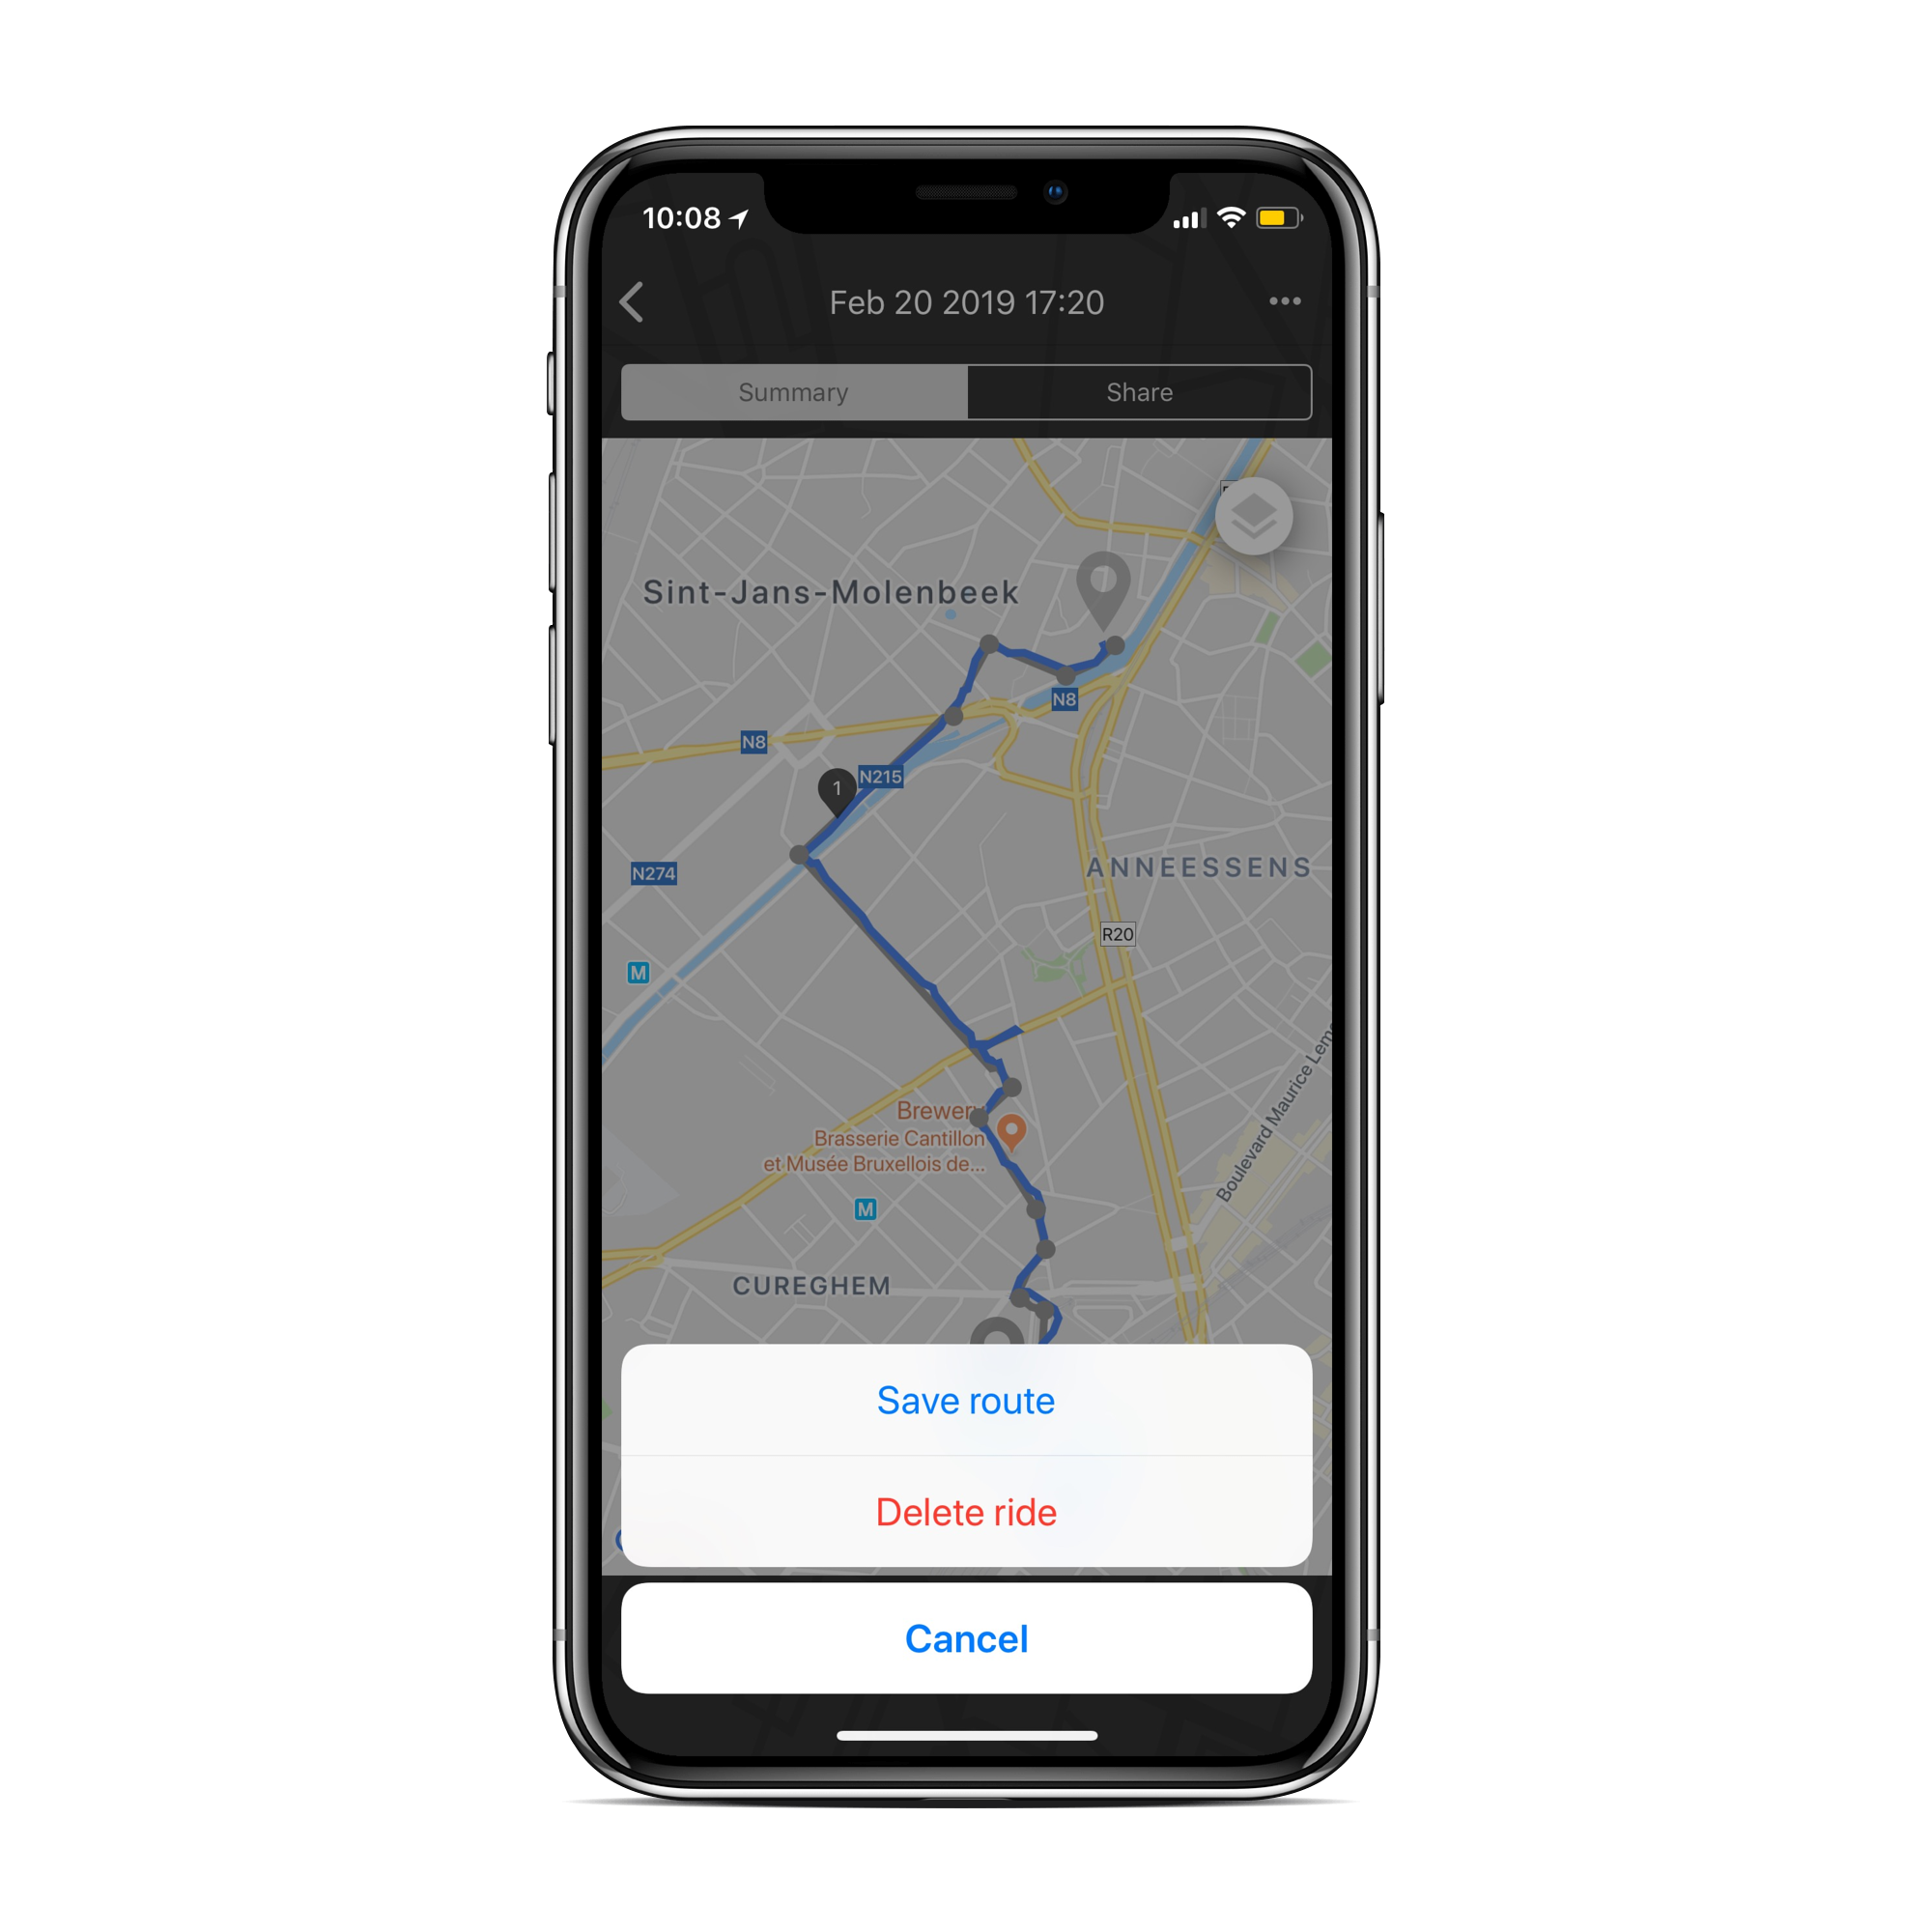 Screen of Beeline app showing the option to save a route of delete it